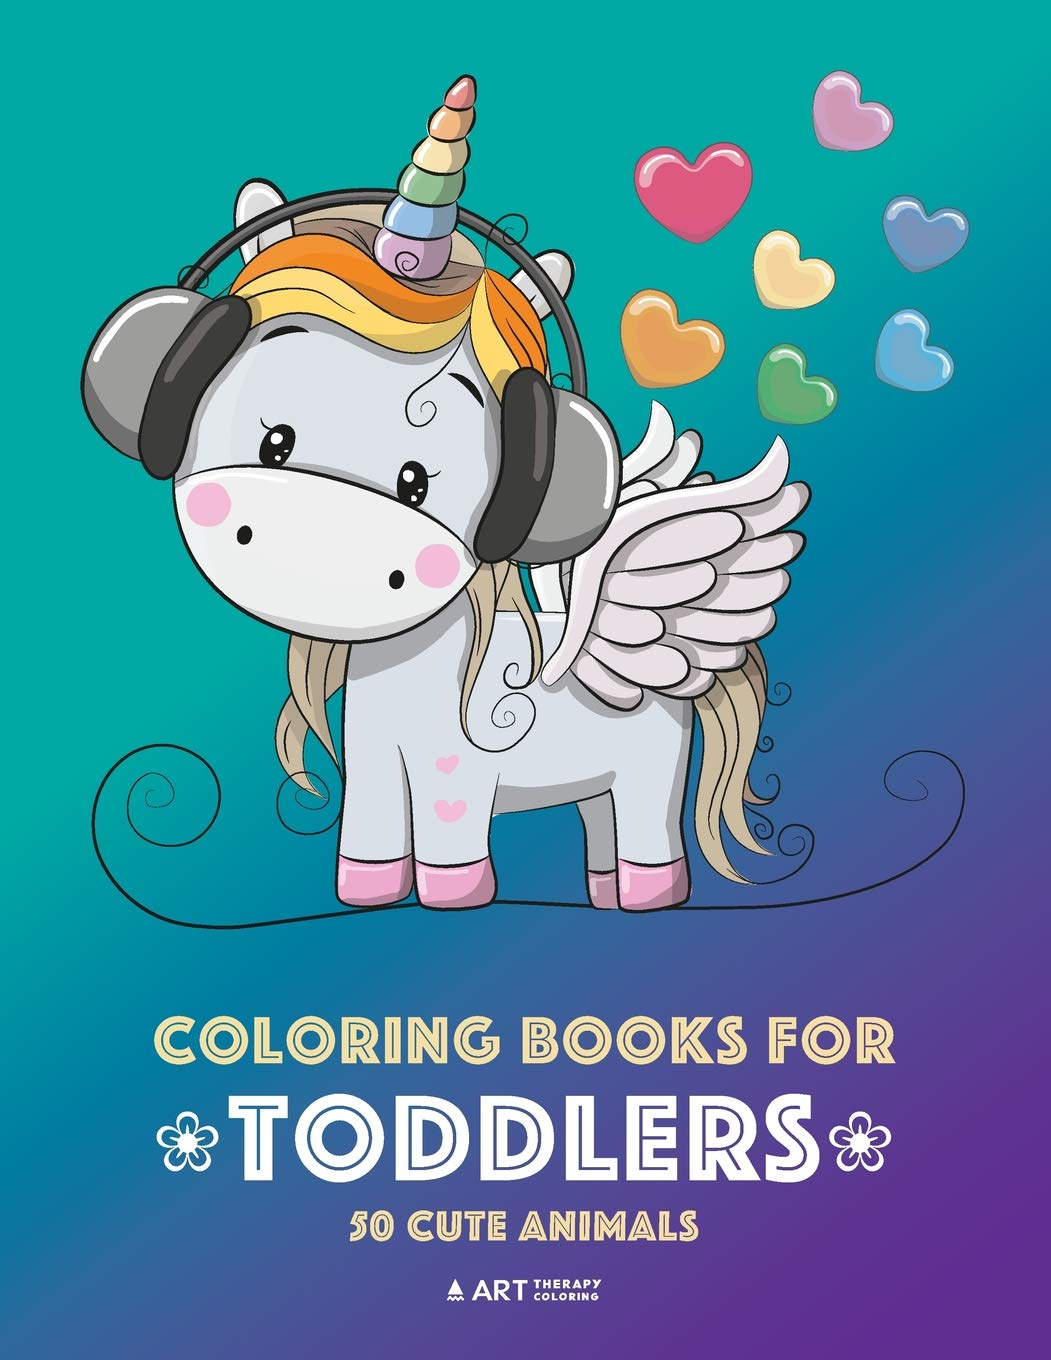 Amazon Com Coloring Books For Toddlers 50 Cute Animals Cute Animal Colouring Book For Girls Or Boys Cute Owl Cat Dog Rabbit Bear Relaxing Magnificent Coloring Pages For All Toddlers Ages 1 4 9781641261586